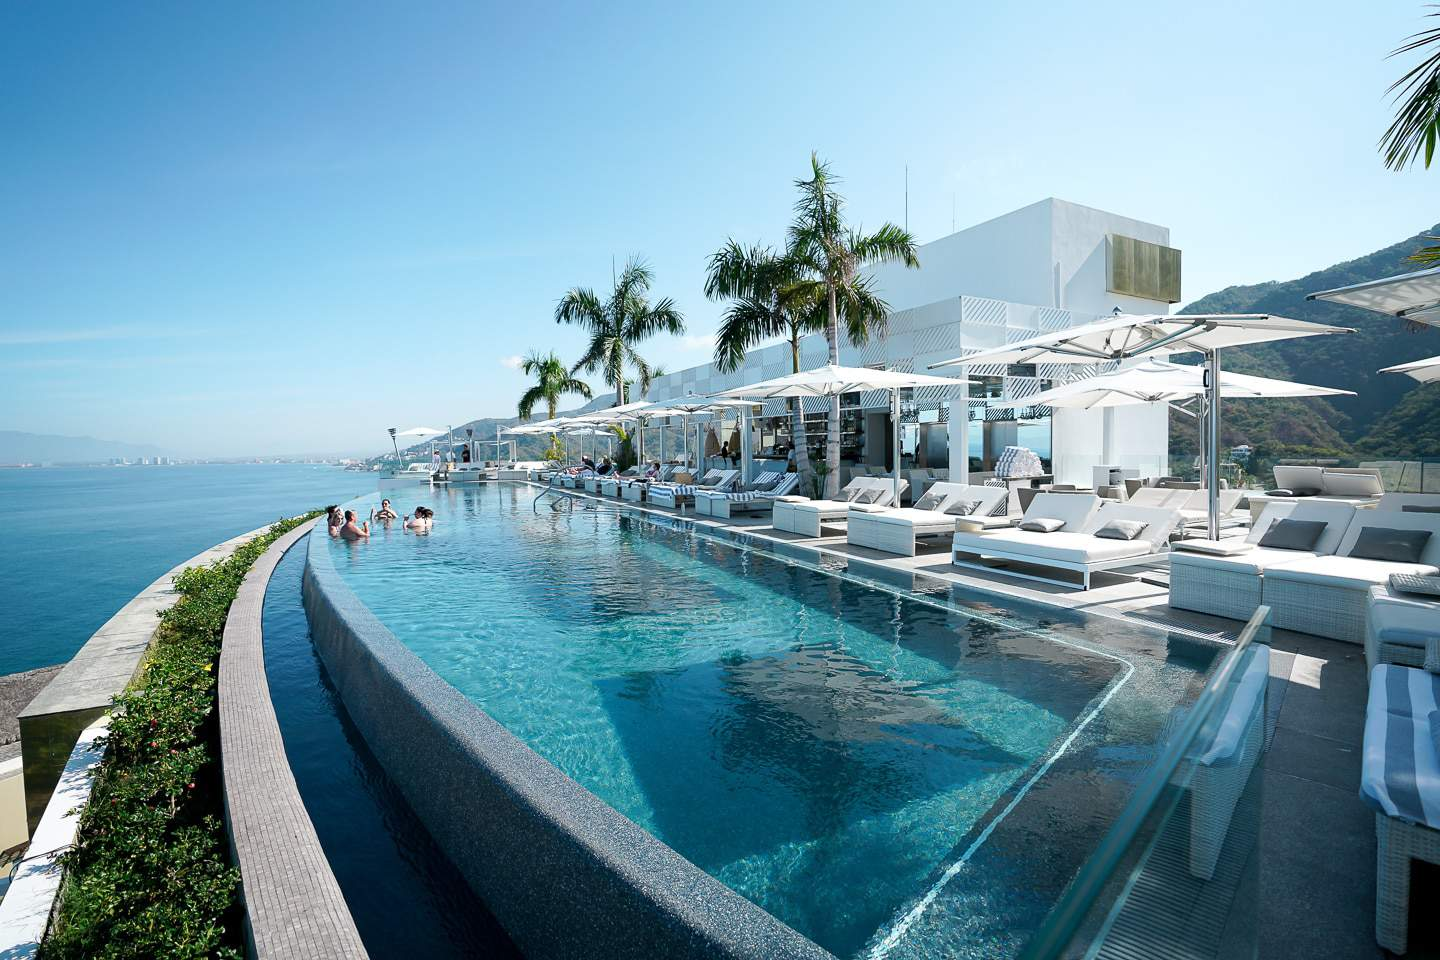 Looking to stay at Hotel Mousai Puerto Vallarta? We're sharing our honest Hotel Mousai review including cost, the stay, the service and more inside.